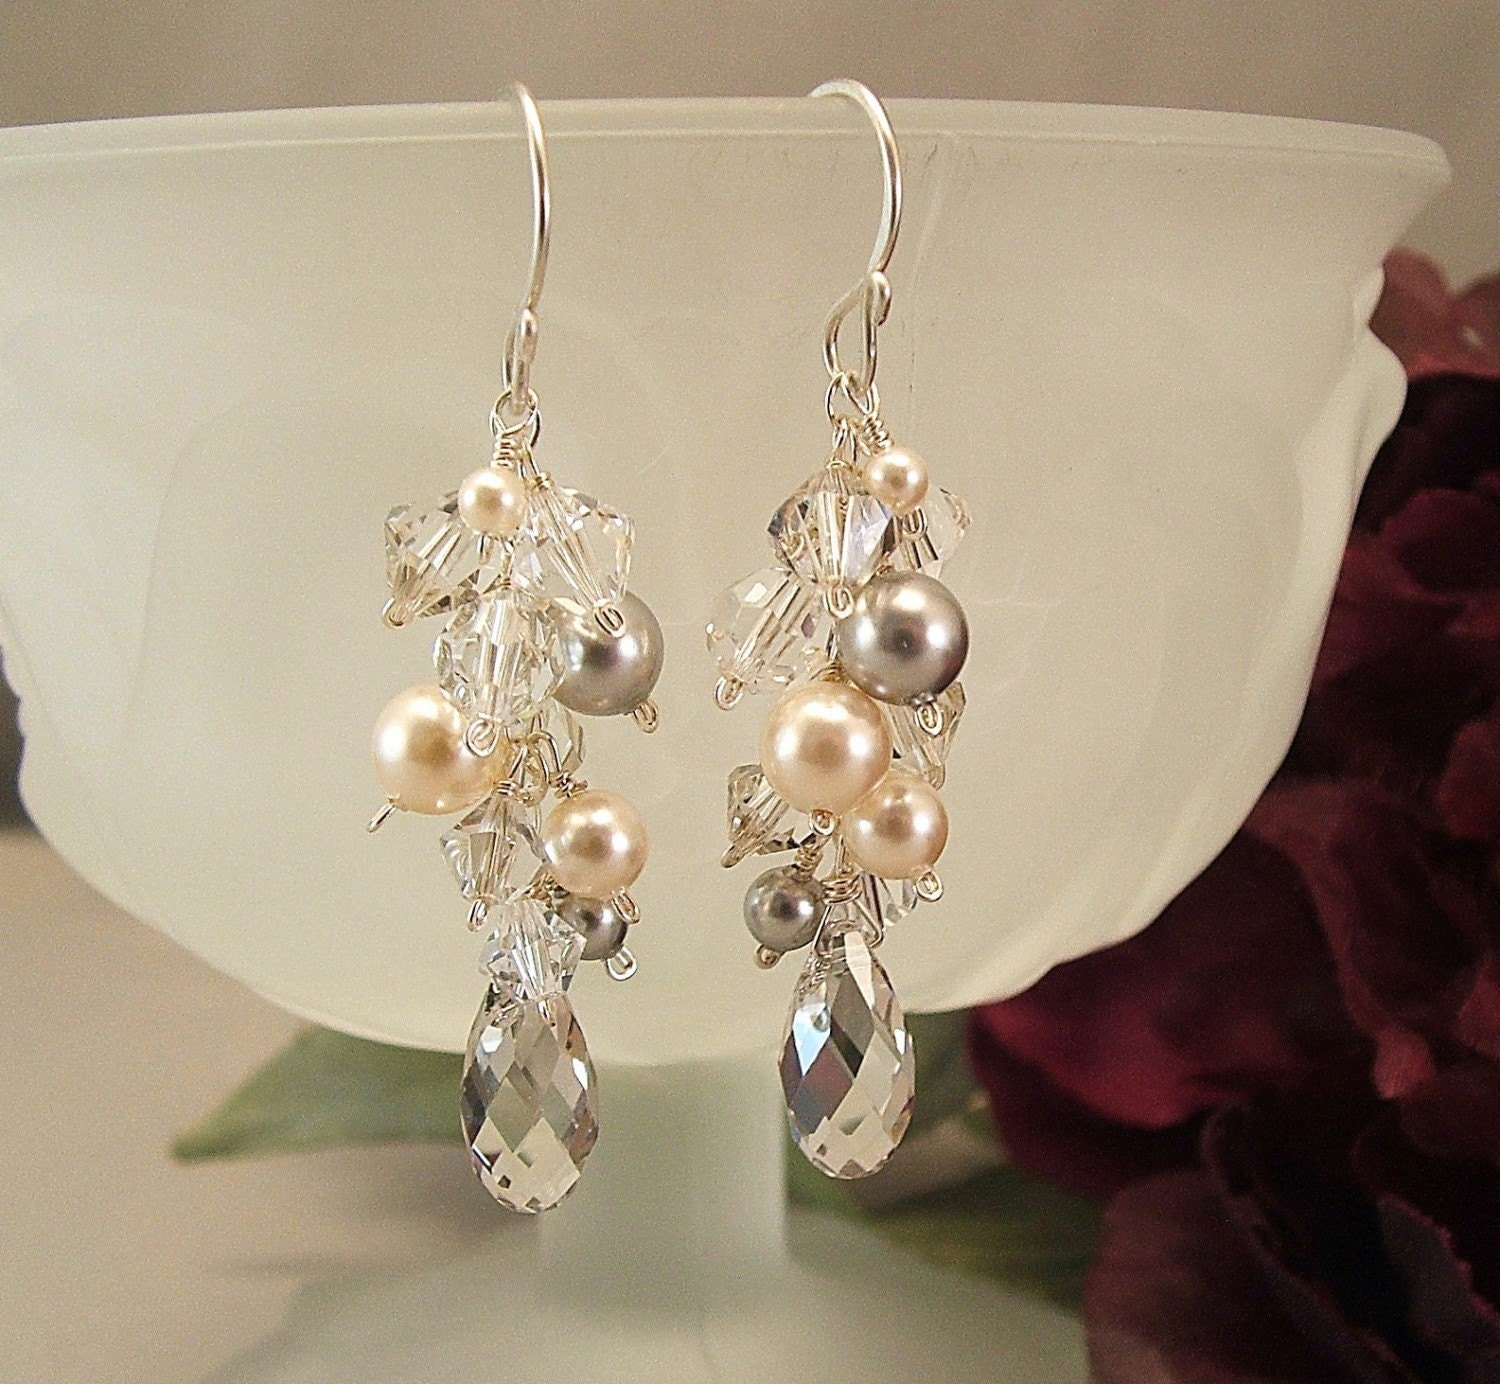 Silver Creme Collection Bridal Earrings Ivory Wedding by Handwired from etsy.com